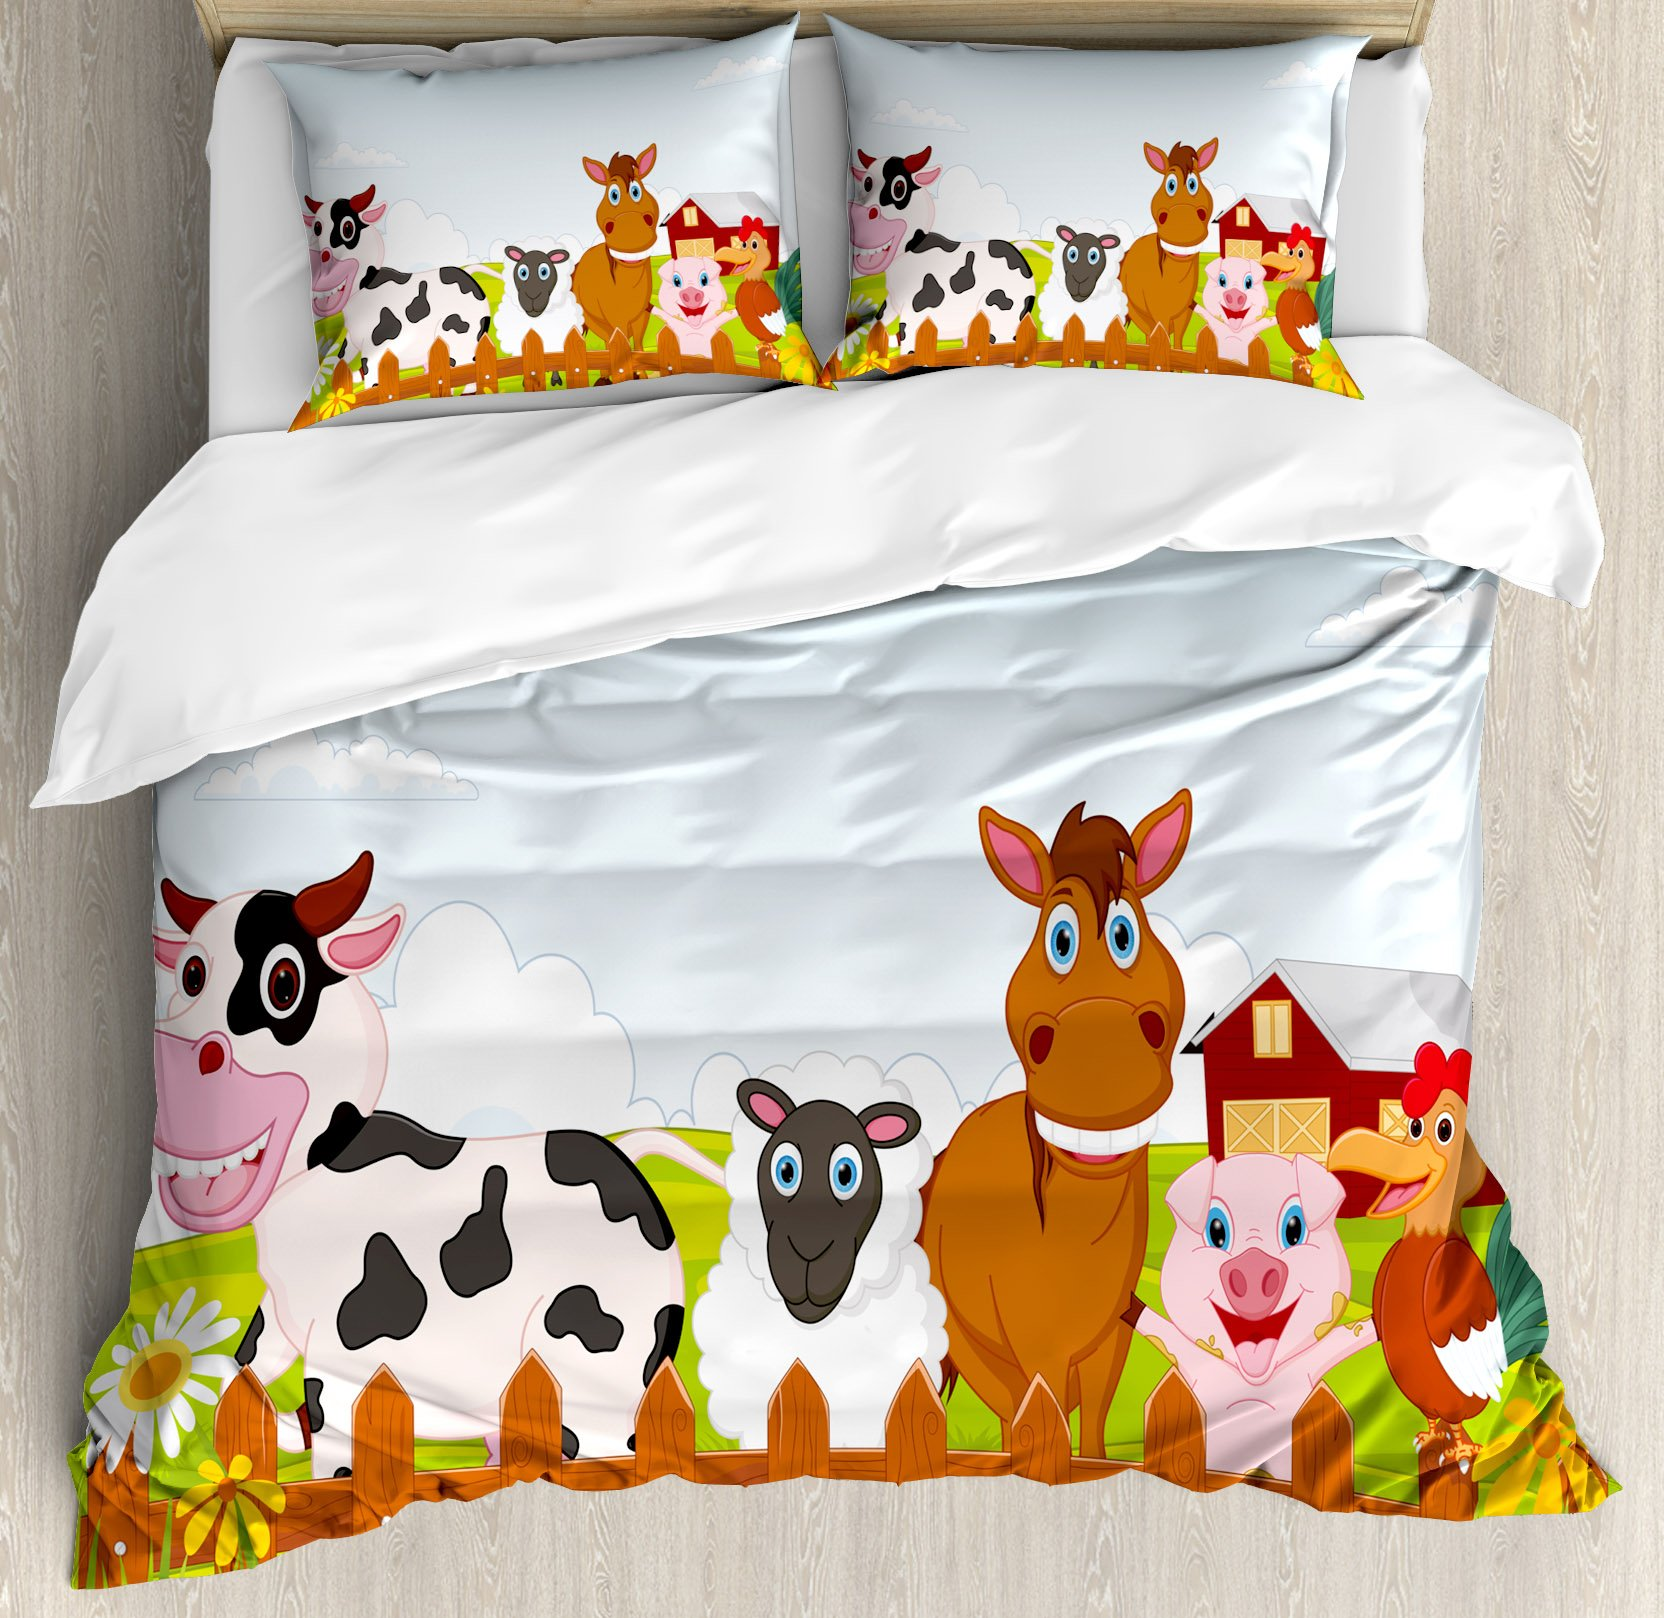 Animal Duvet Cover Set Queen Size by Ambesonne, Cute Farm Creatures with Cow Horse Goat Pig and Chicken by the Fences Kids Cartoon, Decorative 3 Piece Bedding Set with 2 Pillow Shams, Multicolor